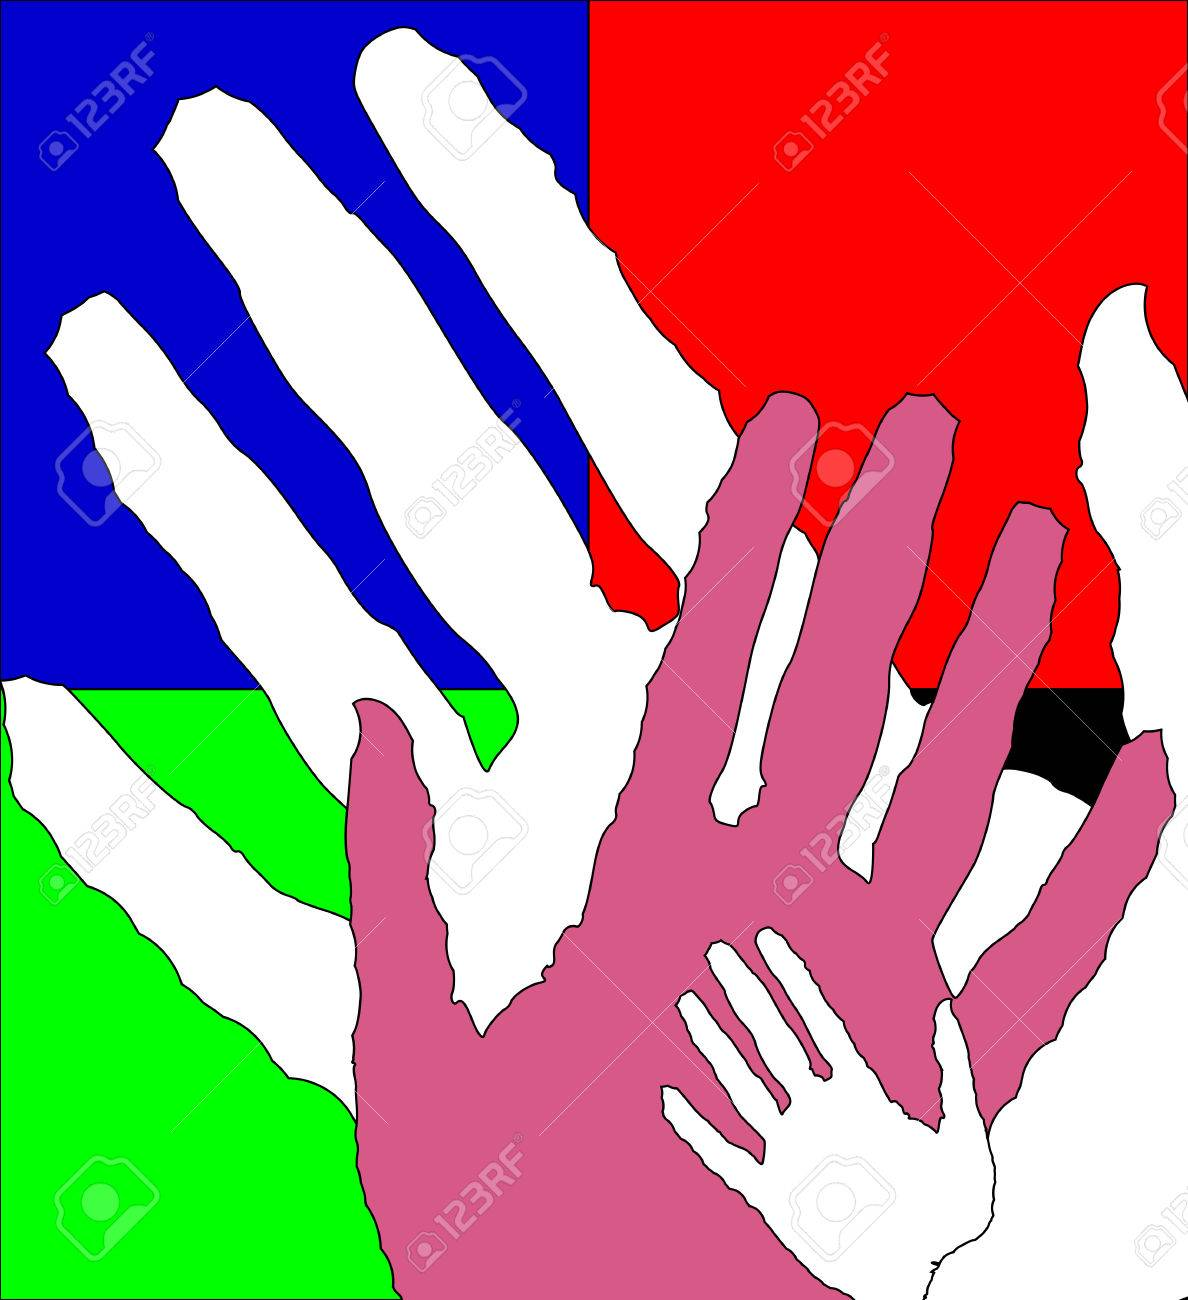 Children and adults hands, vector art illustration. - 51779928